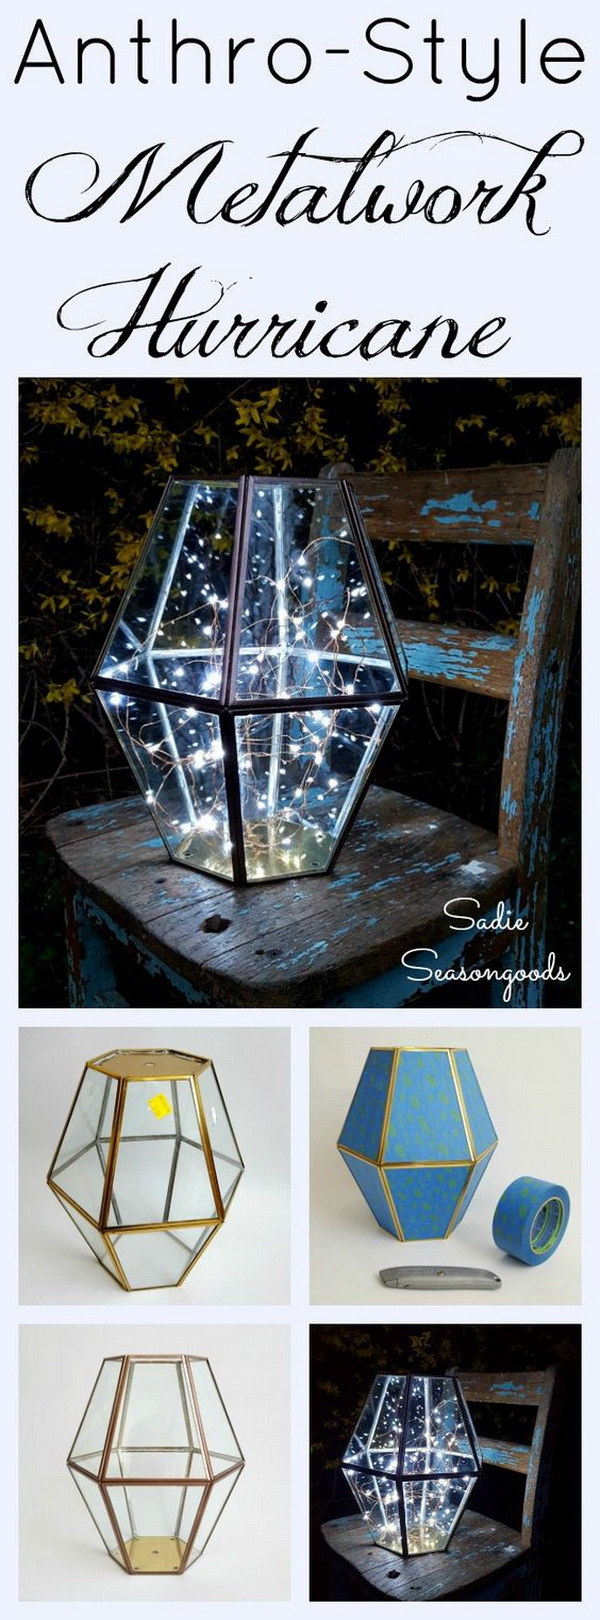 DIY Metalwork Hurricane. Repurpose an outdated vintage brass chandelier or light fixture into this DIY metalwork hurricane! A super easy lighting project that is perfect for your outdoor summer nights!